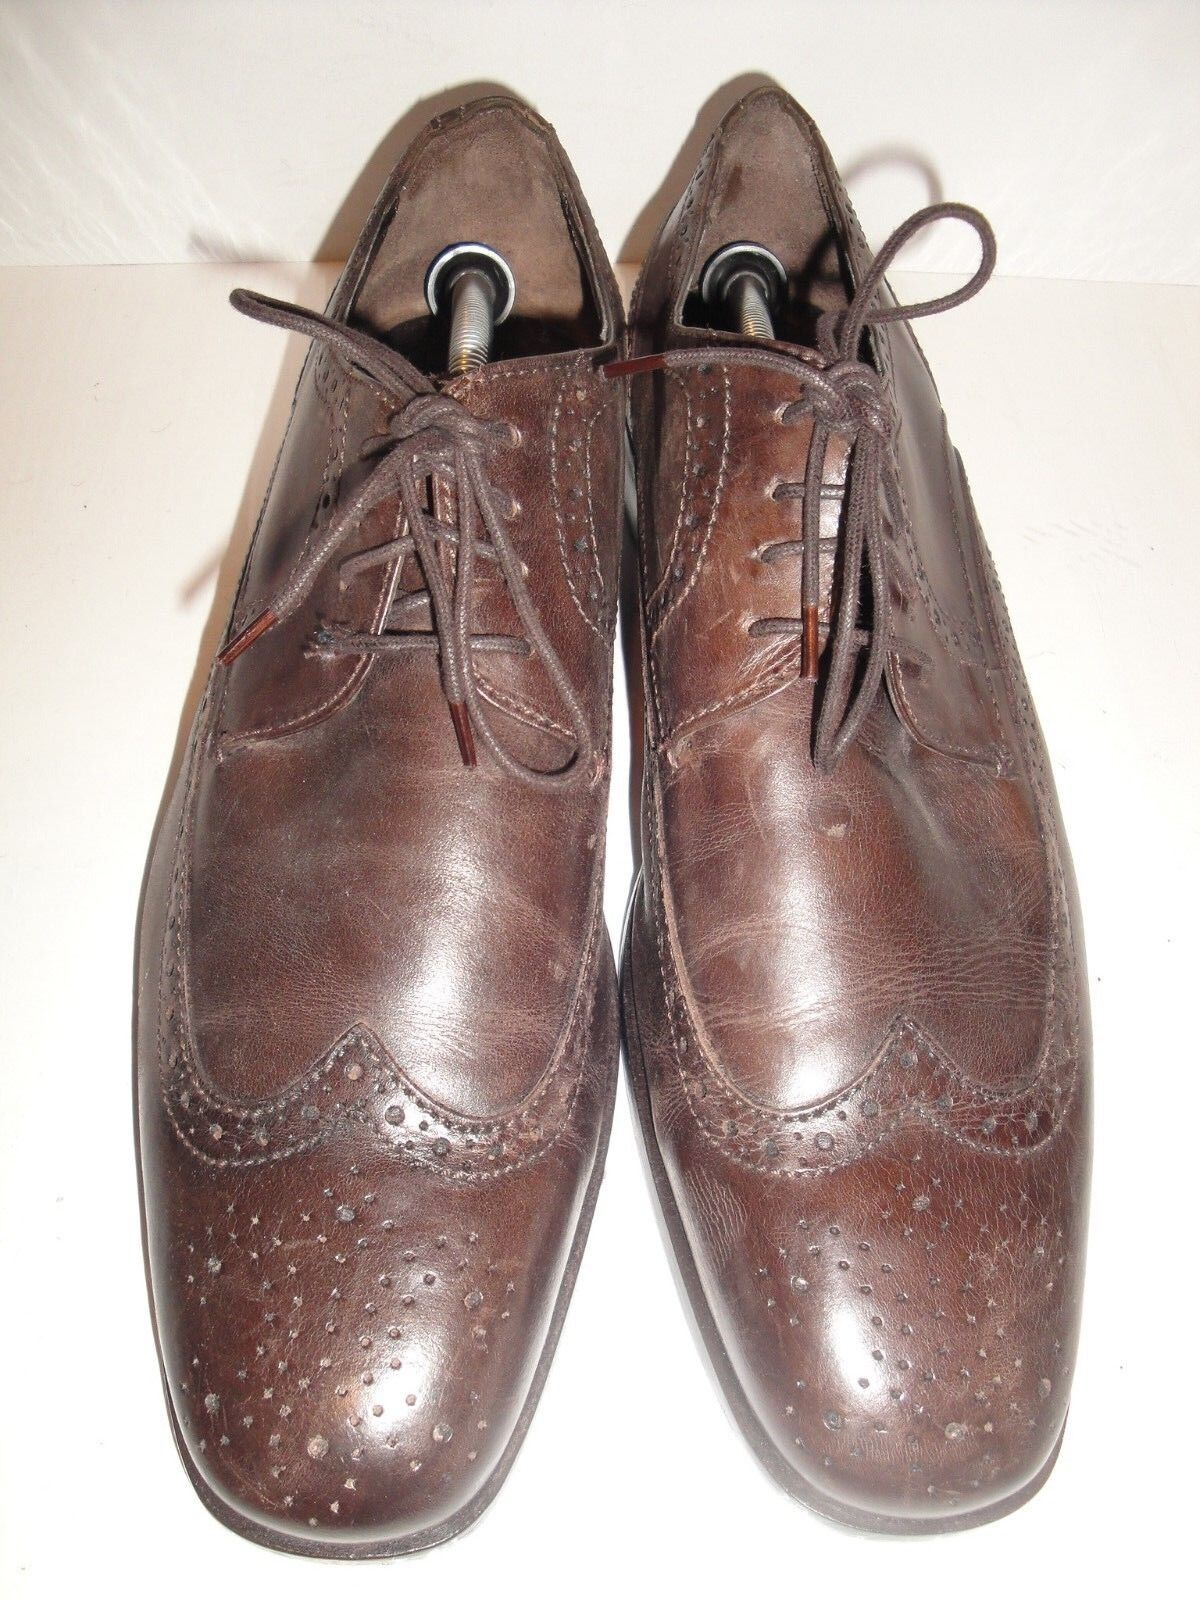 Bostonian Brown Leather Wingtip Brogues Men's shoes Size 11M